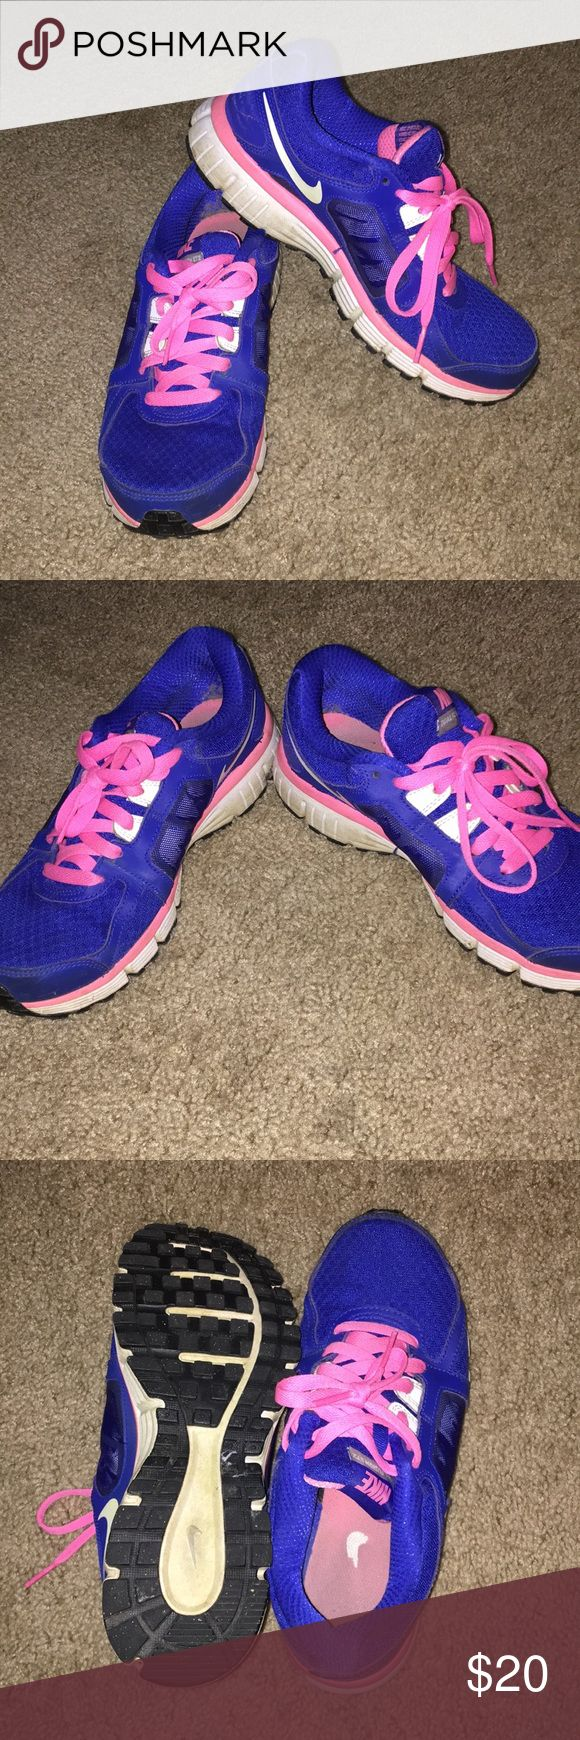 Nike dual fusion running shoes Women's Nike dual fusion running shoes. Blue with pink accents and laces. EUC! Nike Shoes Athletic Shoes